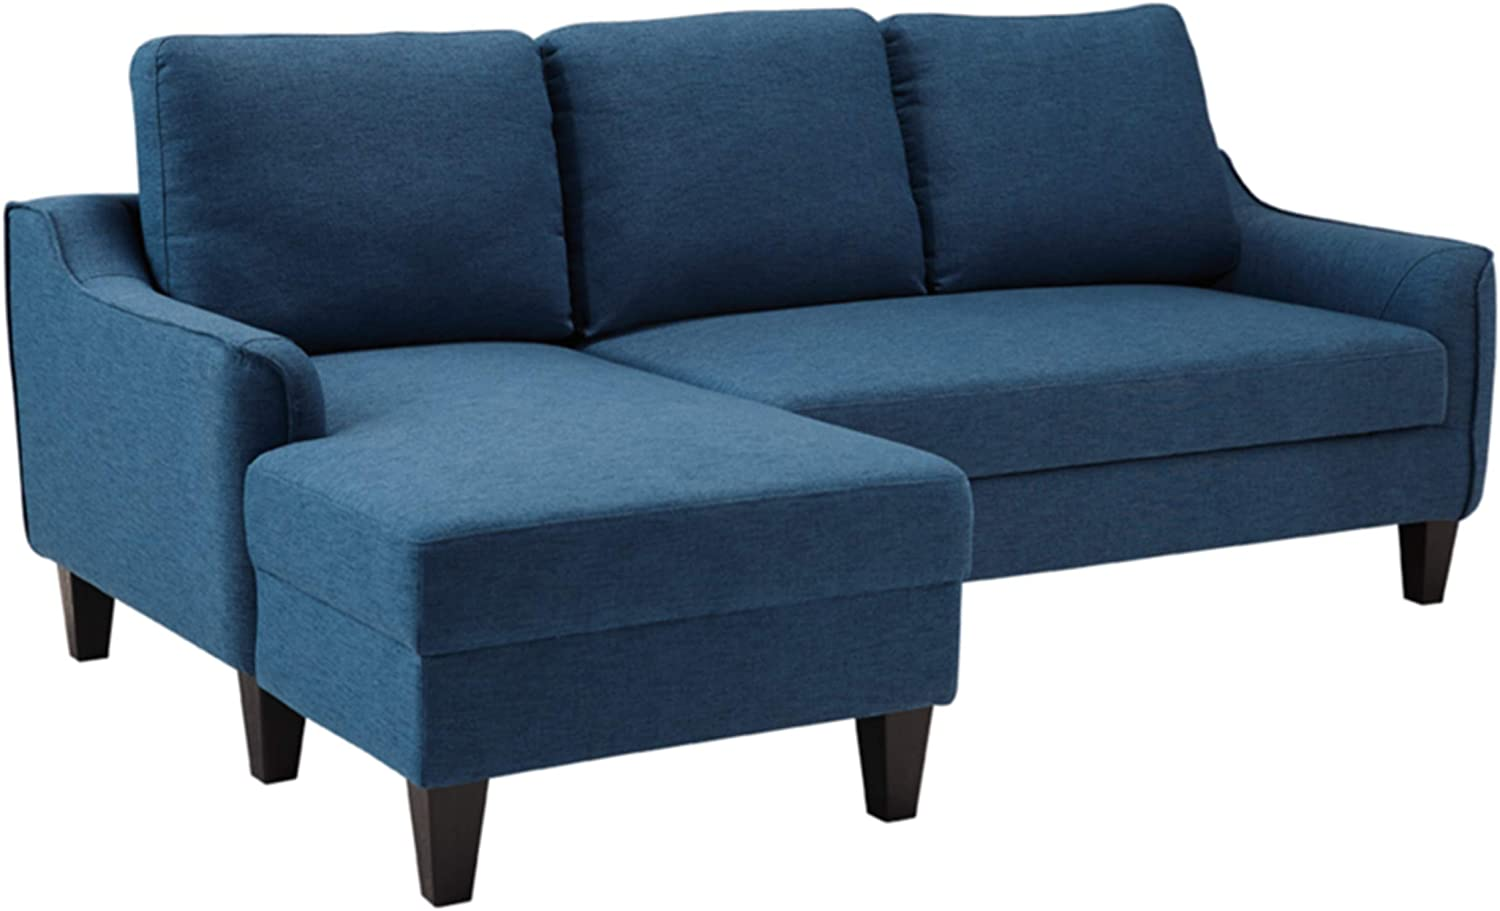 Amazon.com: Signature Design By Ashley - Jarreau Mid-Century Upholstered Sofa Chaise Sleeper, Blue: Furniture & Decor